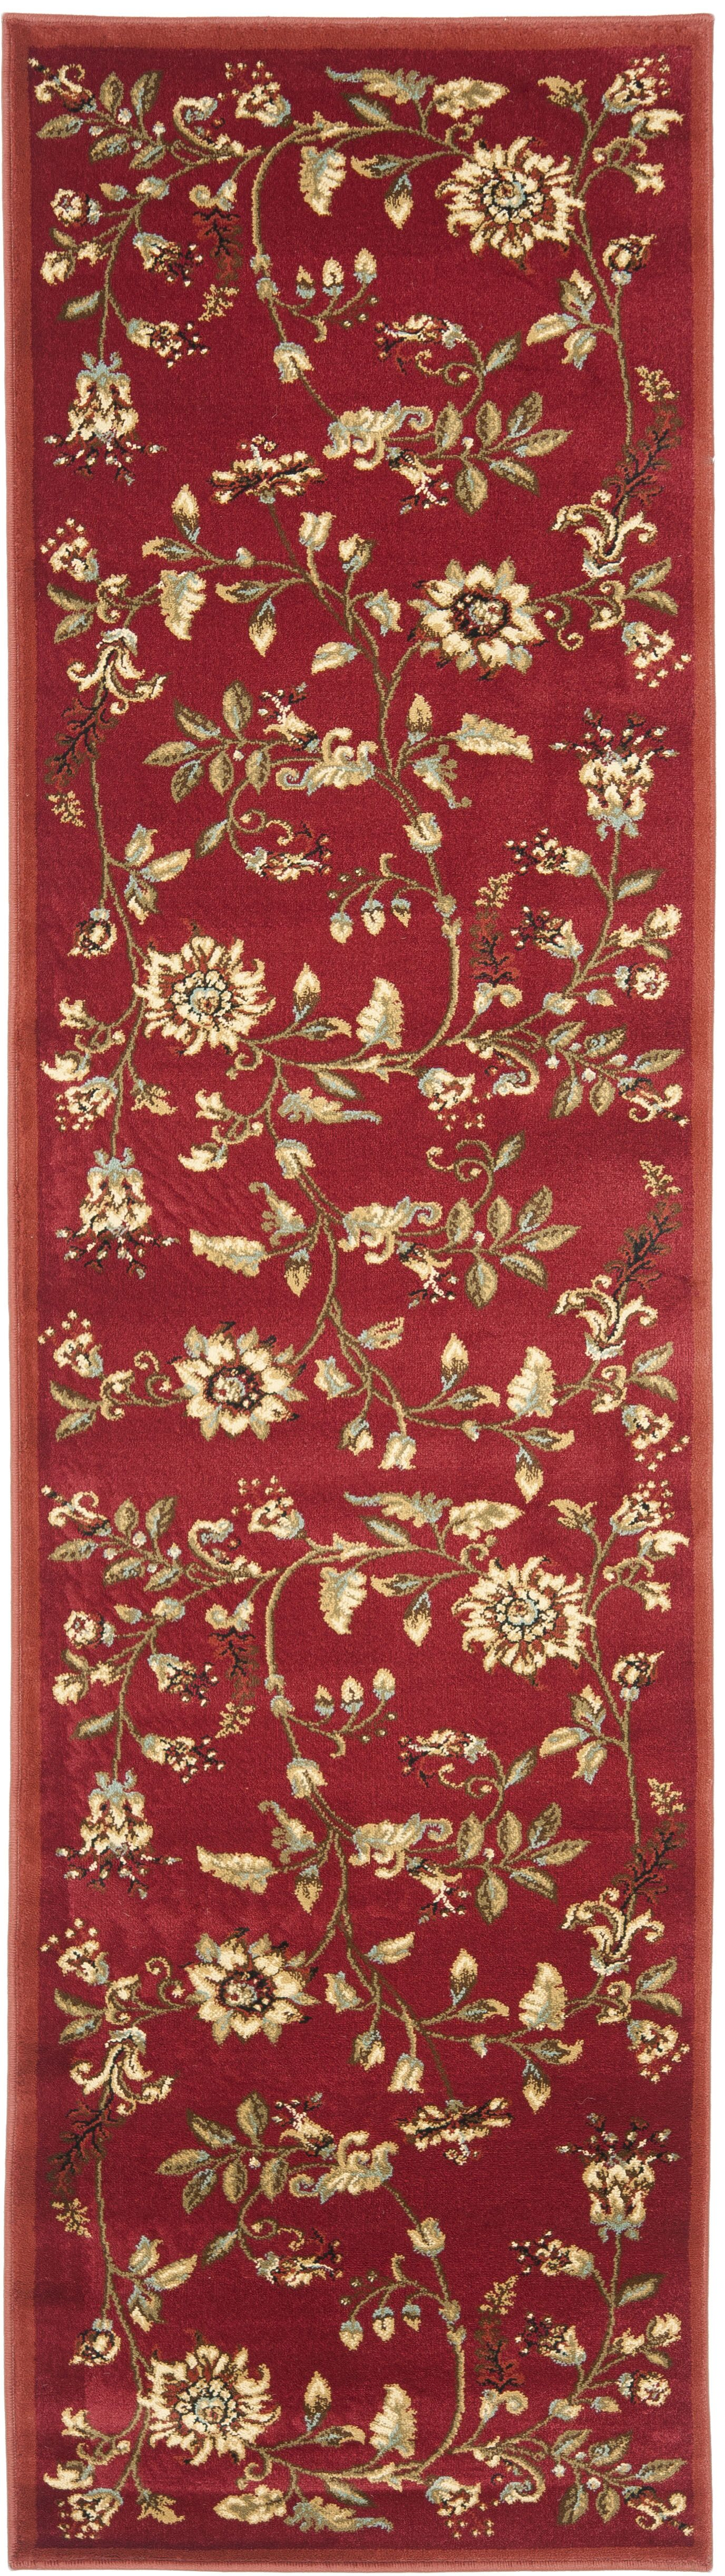 Taufner Red Area Rug Rug Size: Runner 2'3